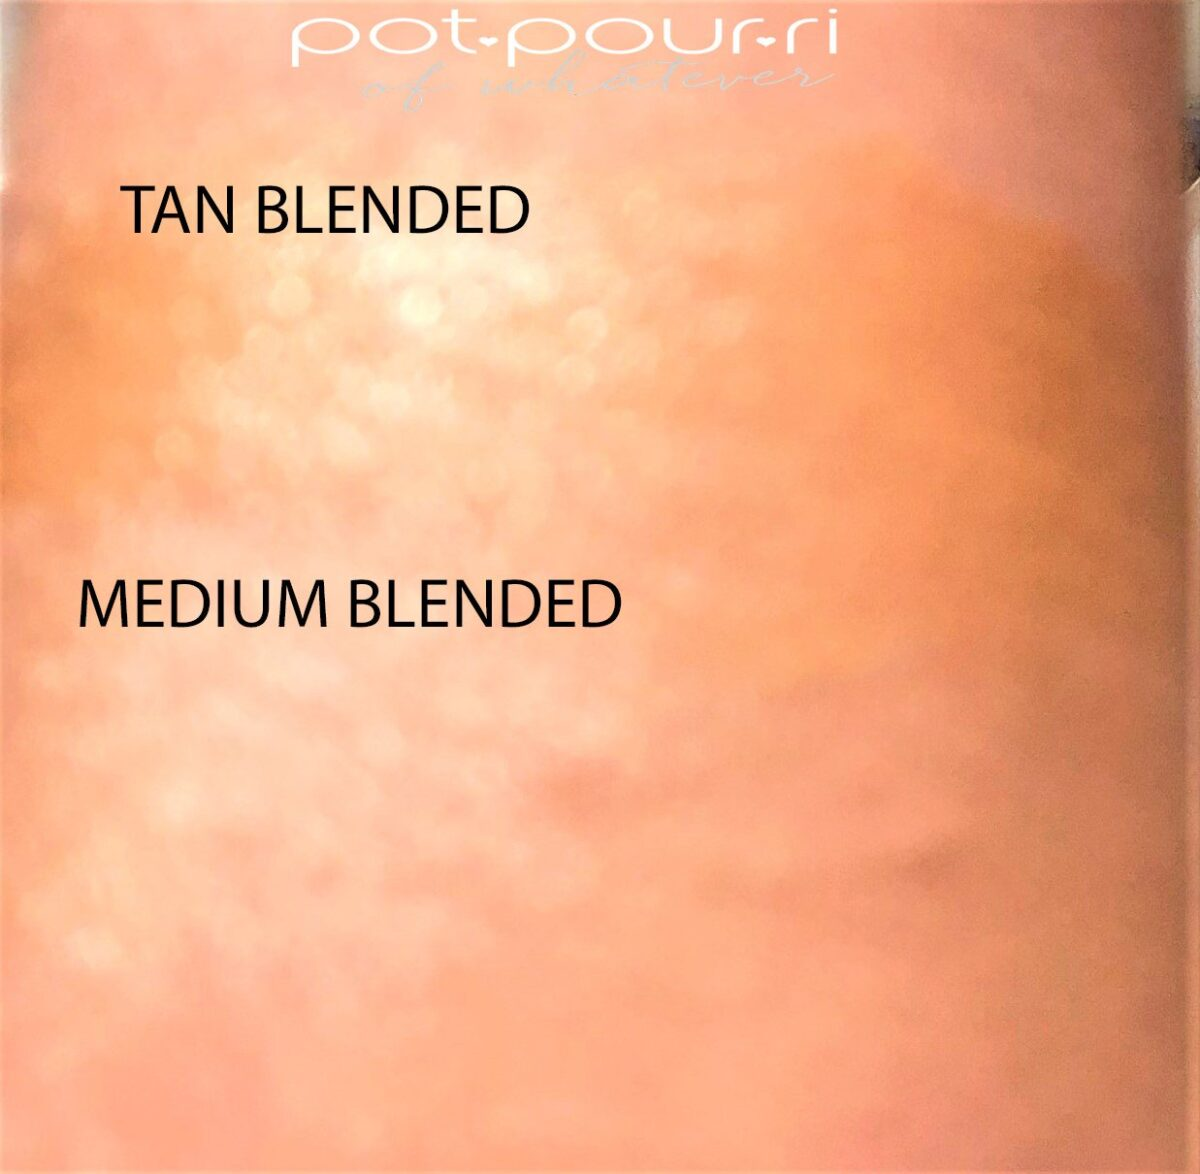 TAN AND MEDIUM HOLLYWOOD FLAWLESS FILTER SWATCHES